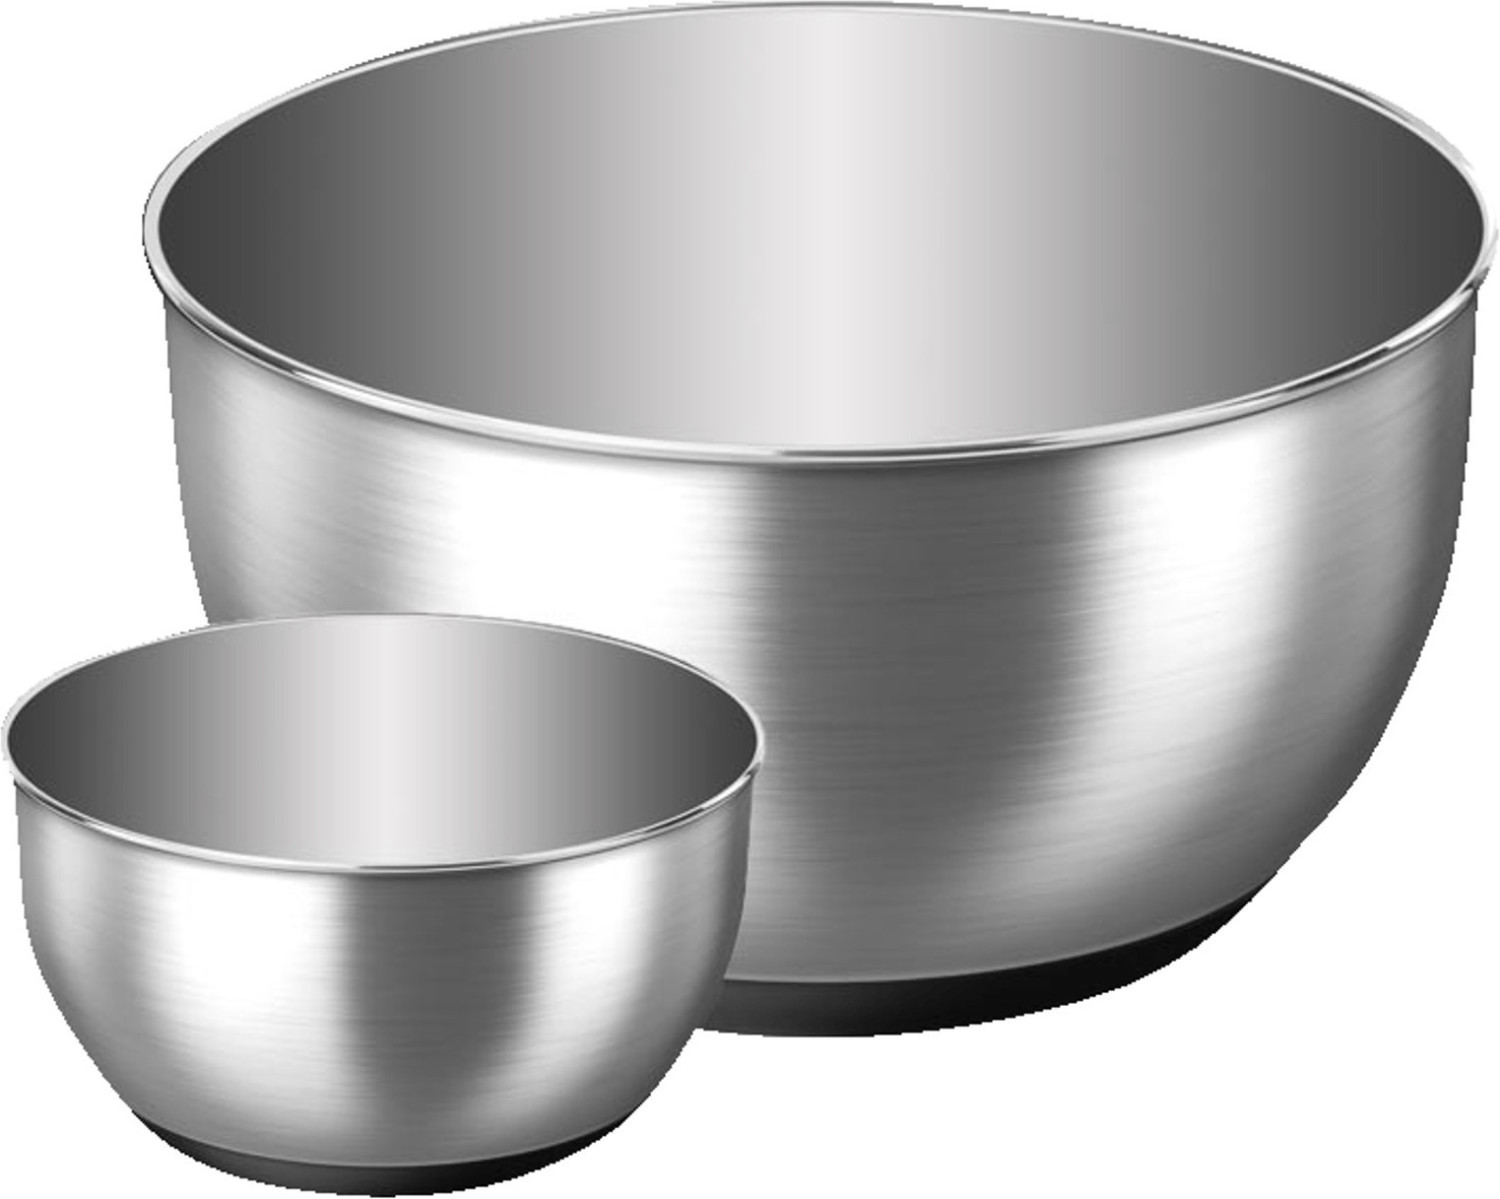 Image of Emsa Accenta Salad Bowl-Set 2-pieces stainless steel